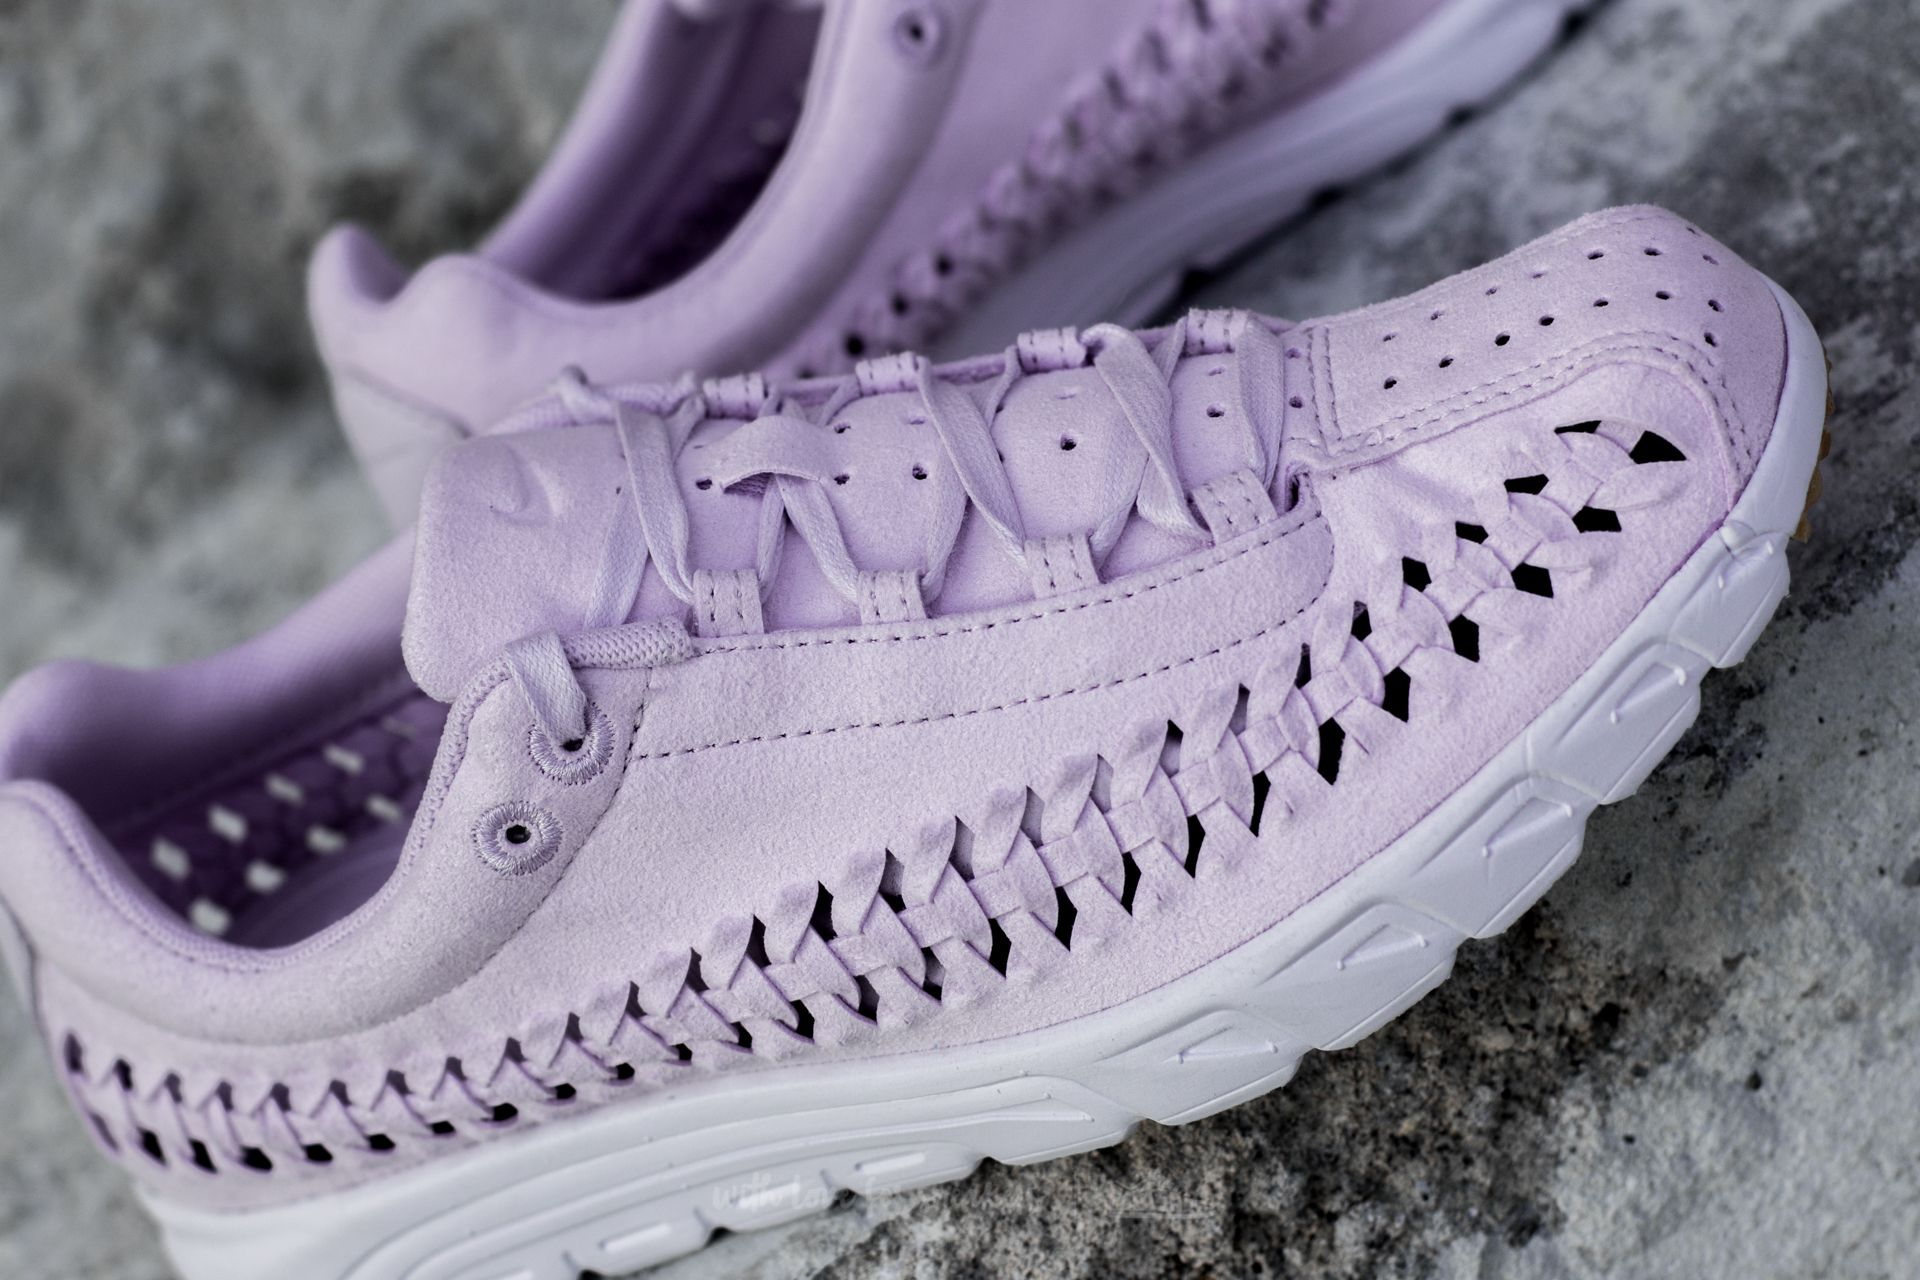 f1cc18c84b7 ... Nike Wmns Mayfly Woven QS Barely Grape Barely Grape at a great price 73  f6e7869 ...